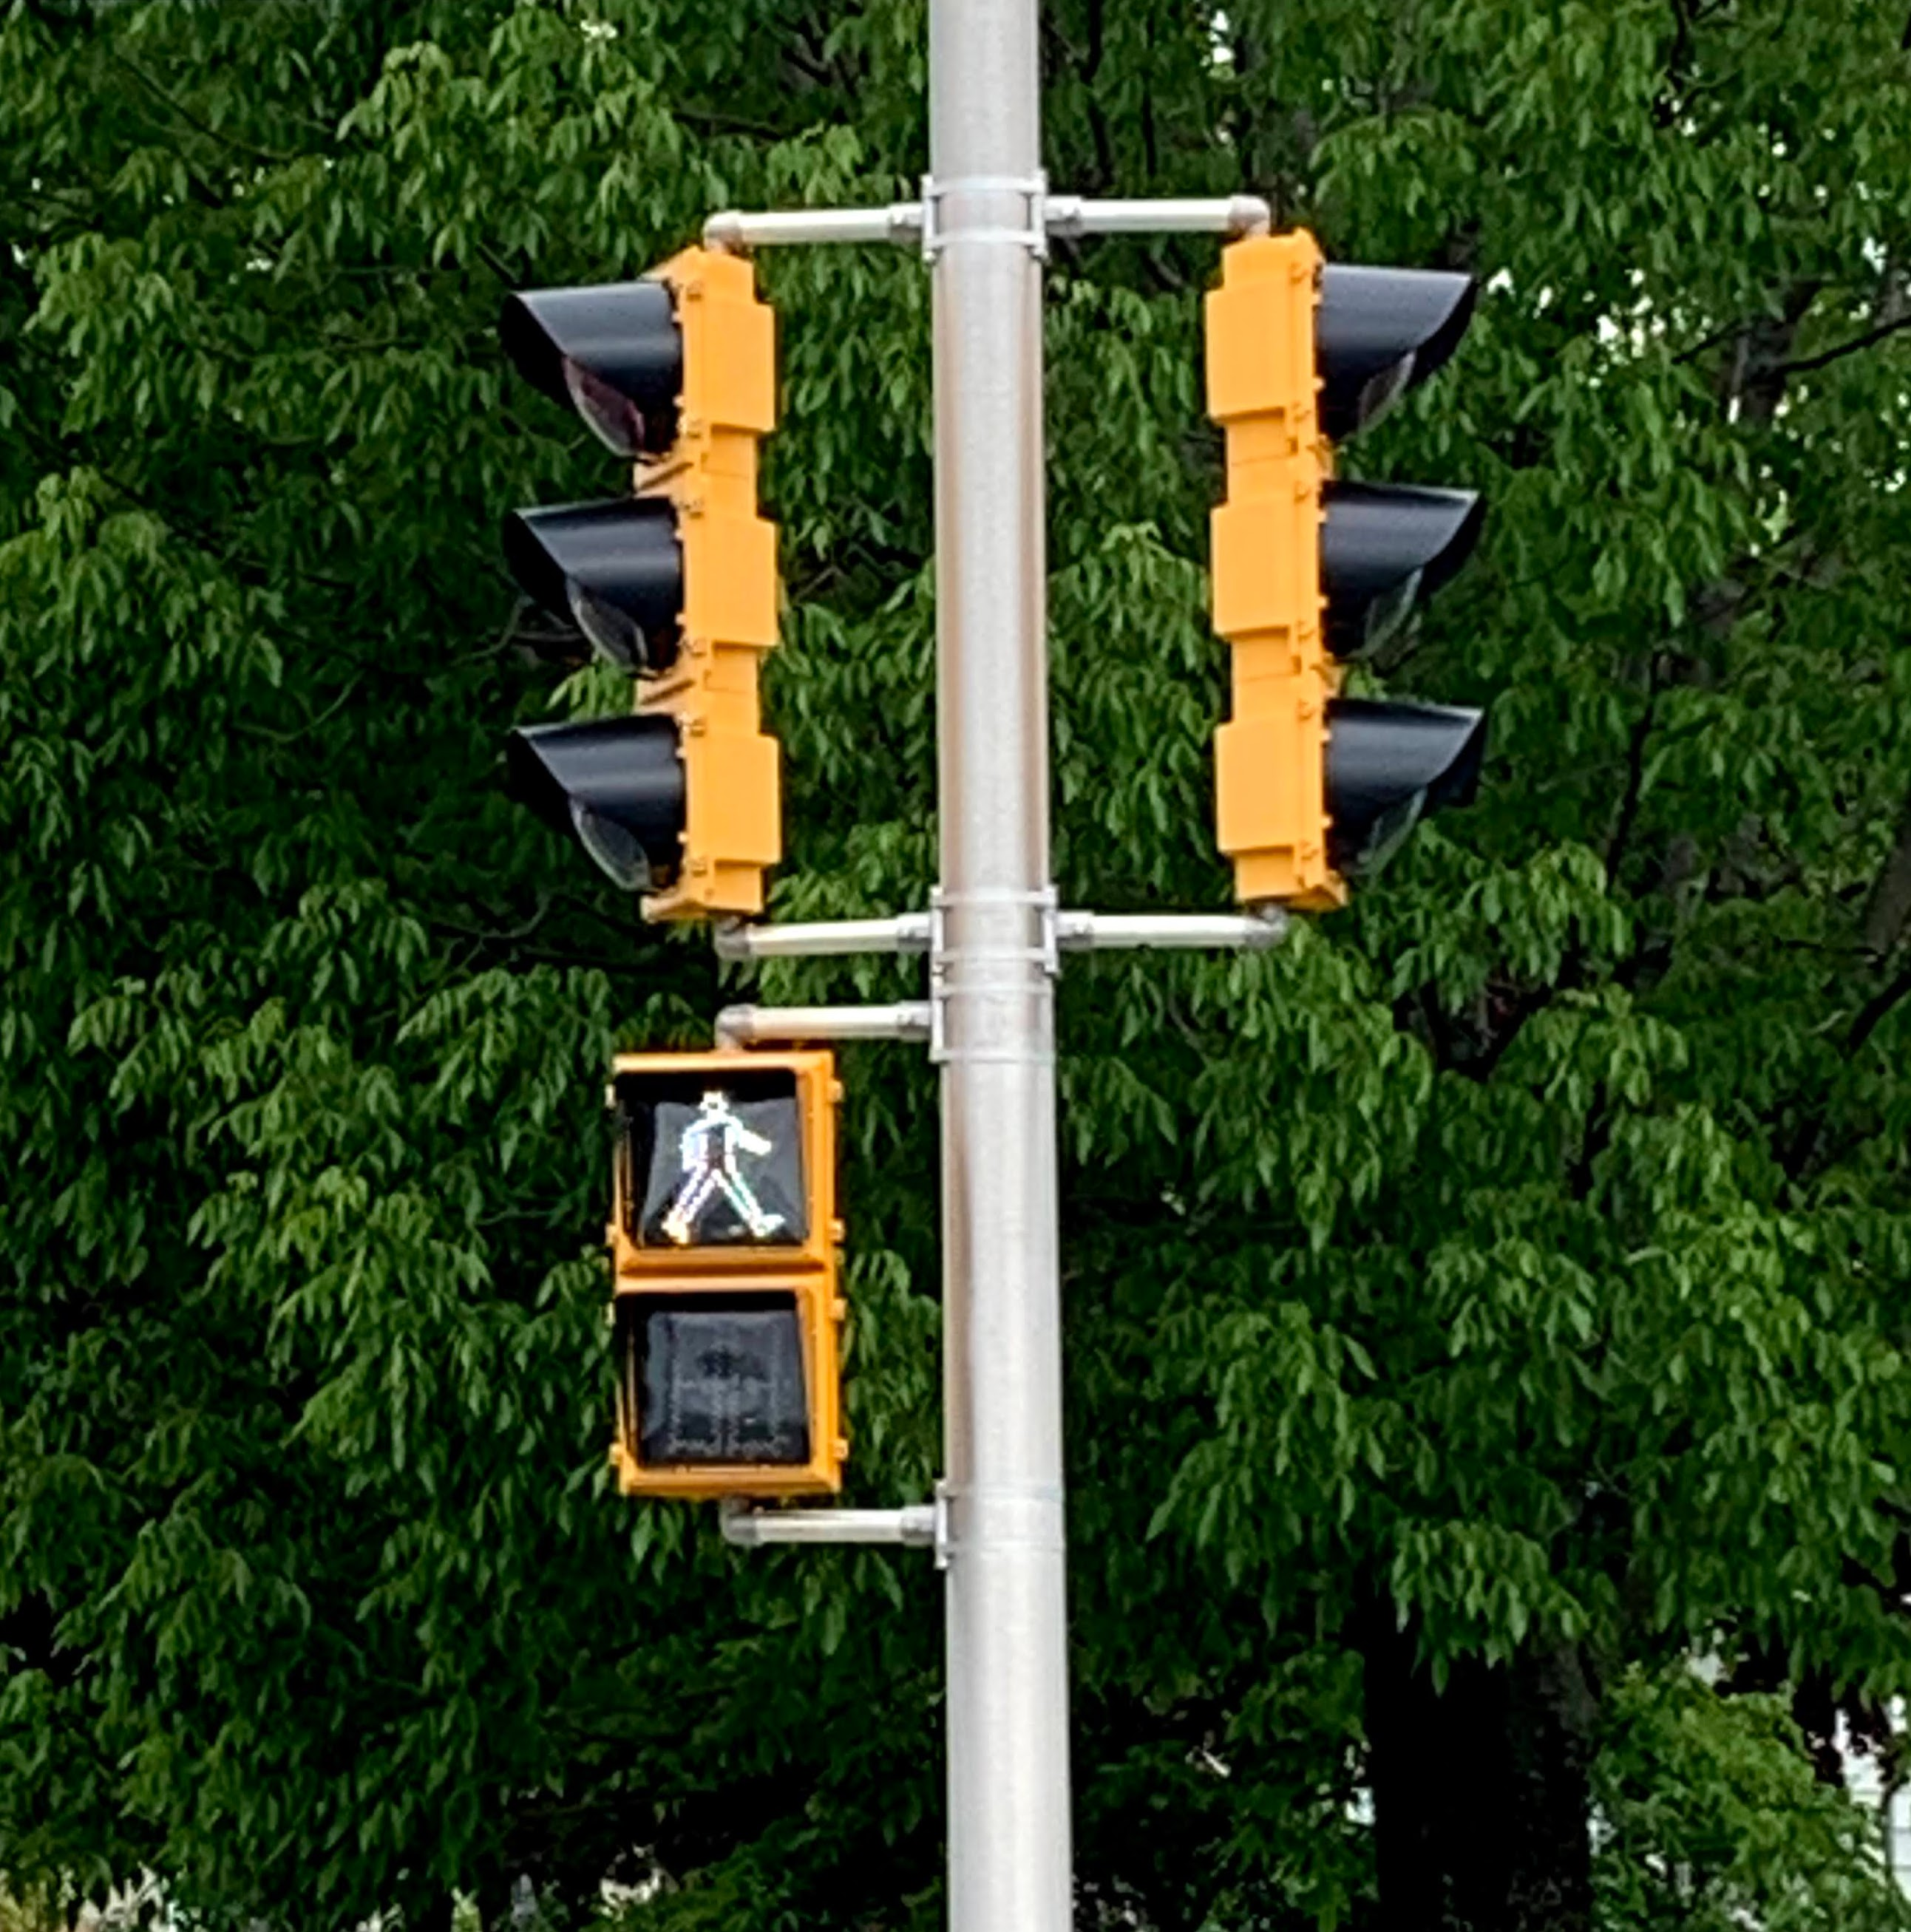 Photograph of Signalized Traffic Control